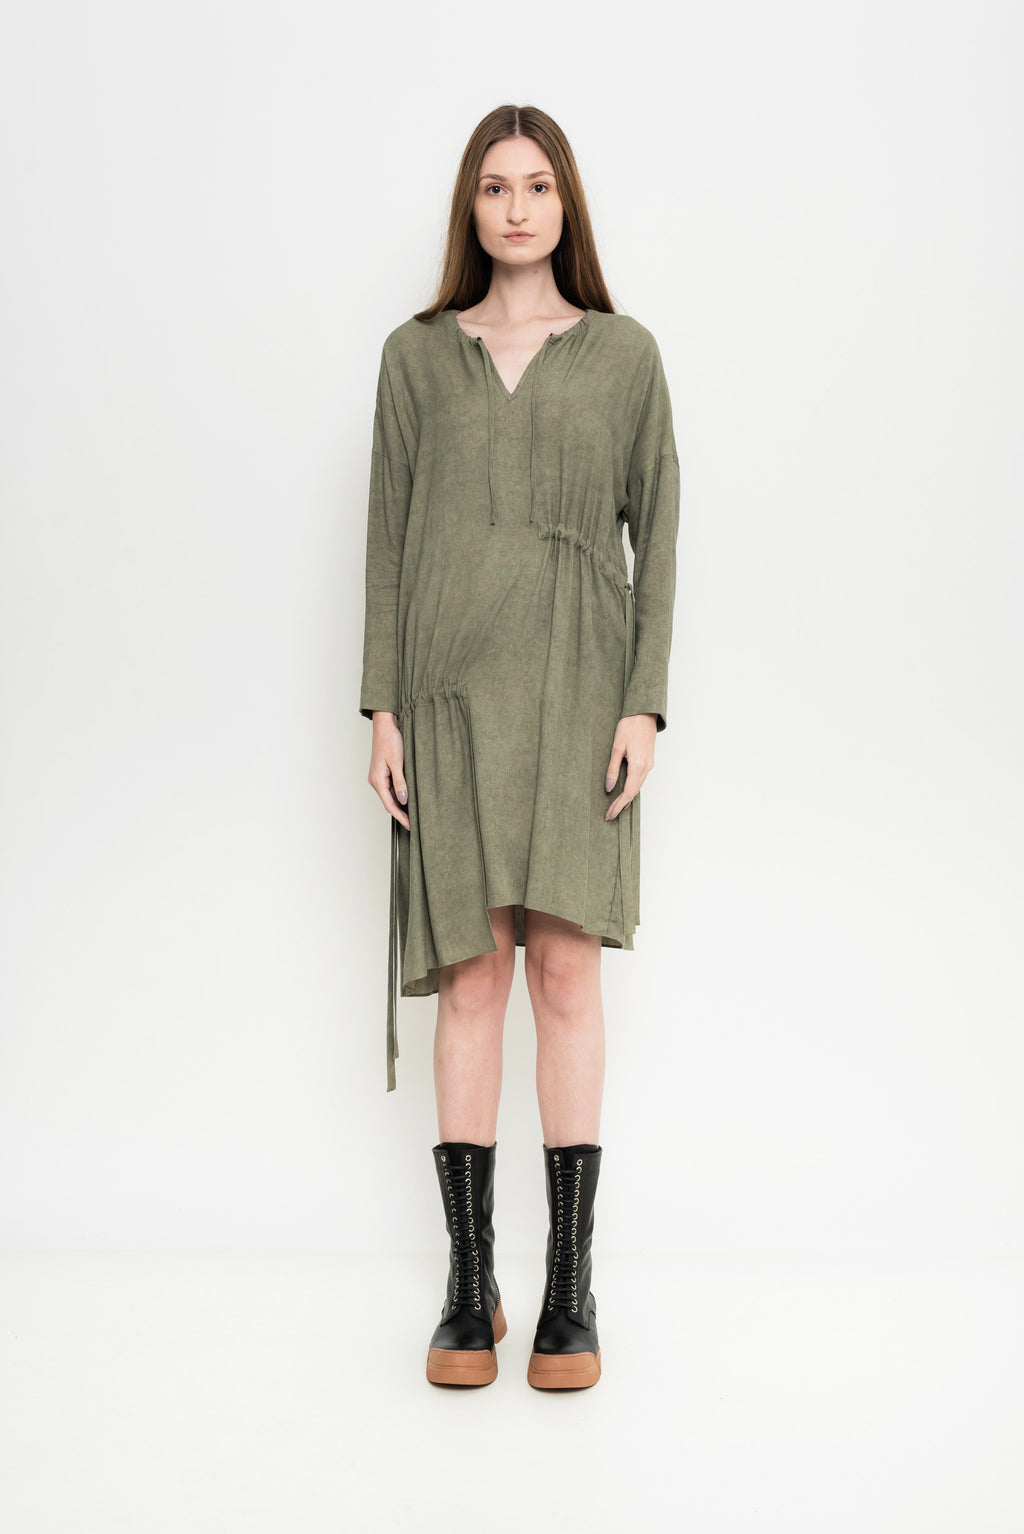 Tinted Long Sleeve Dress | Bristol